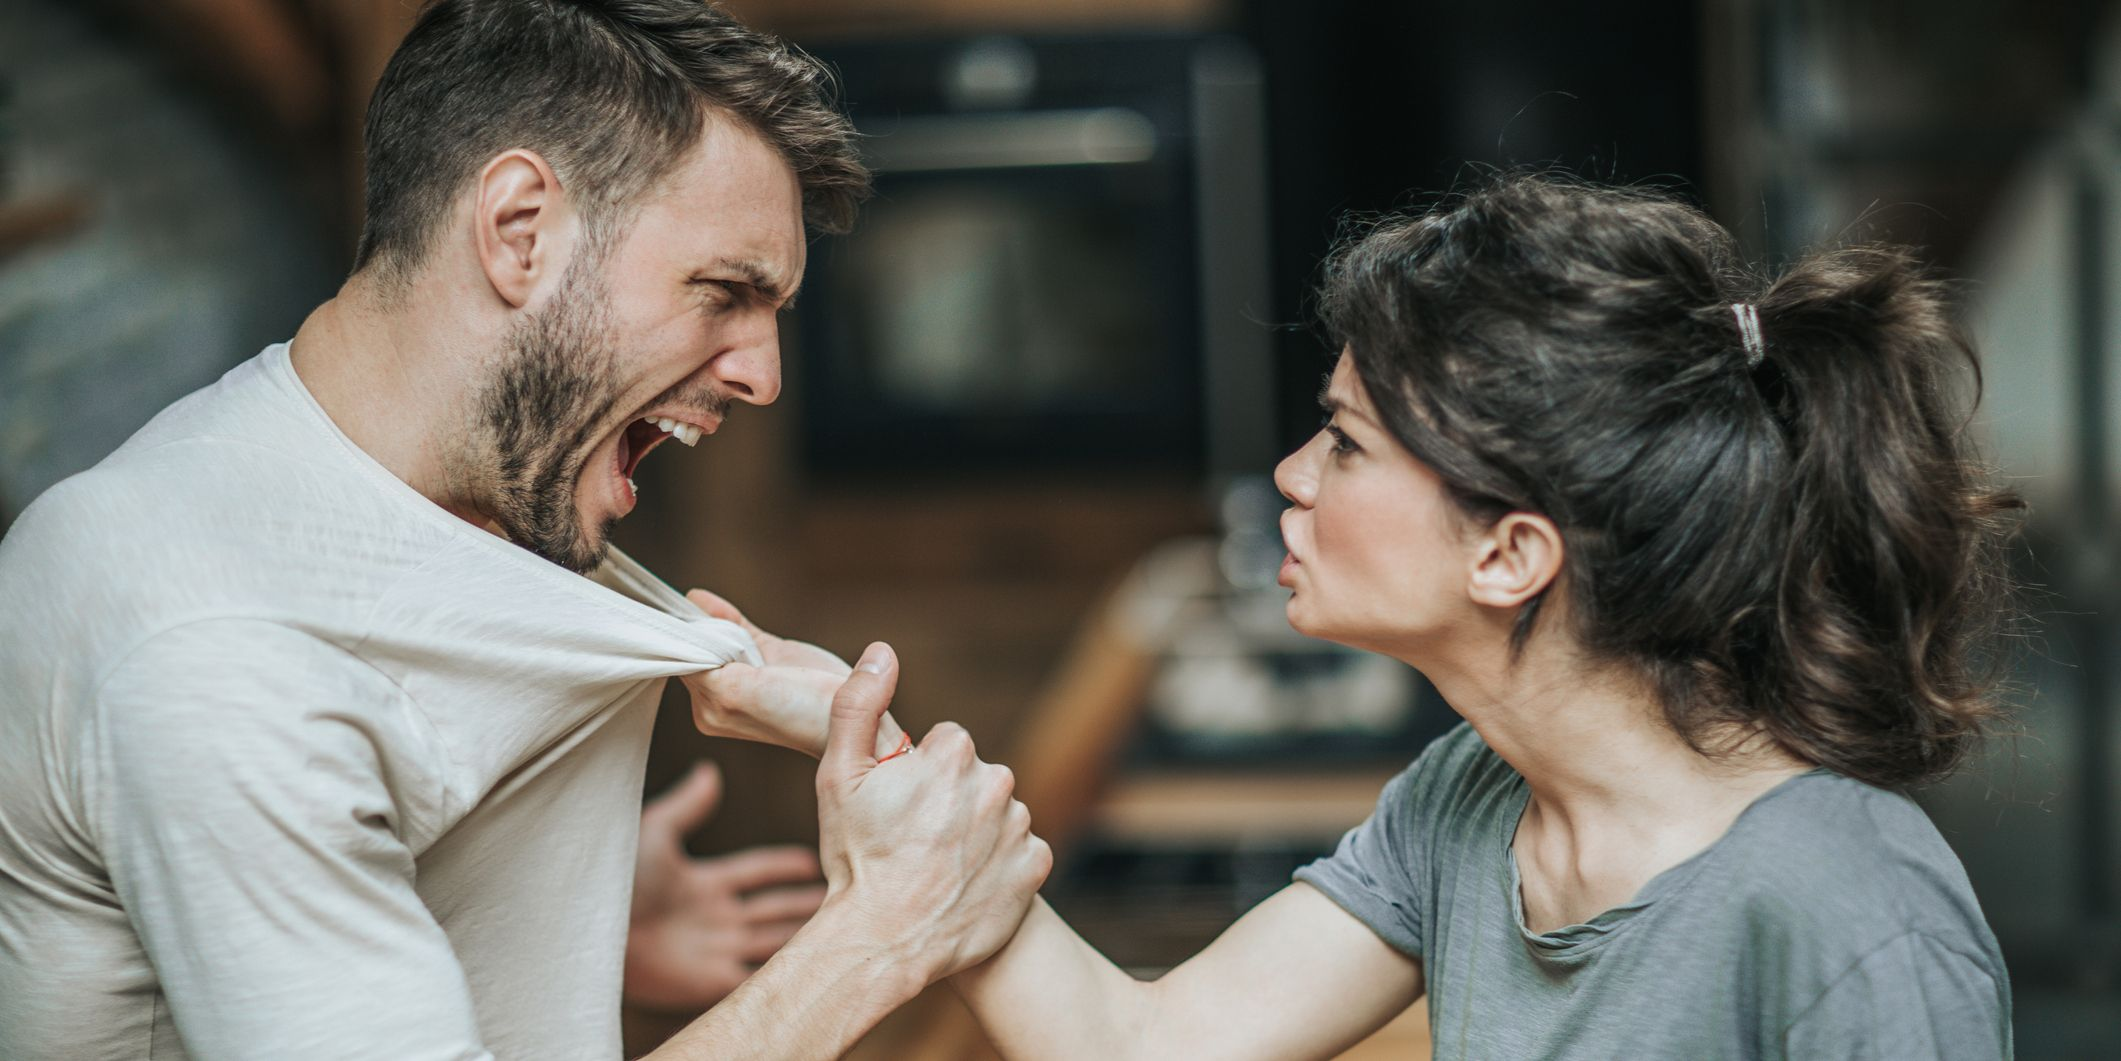 Aggressive couple arguing about their problems at home.